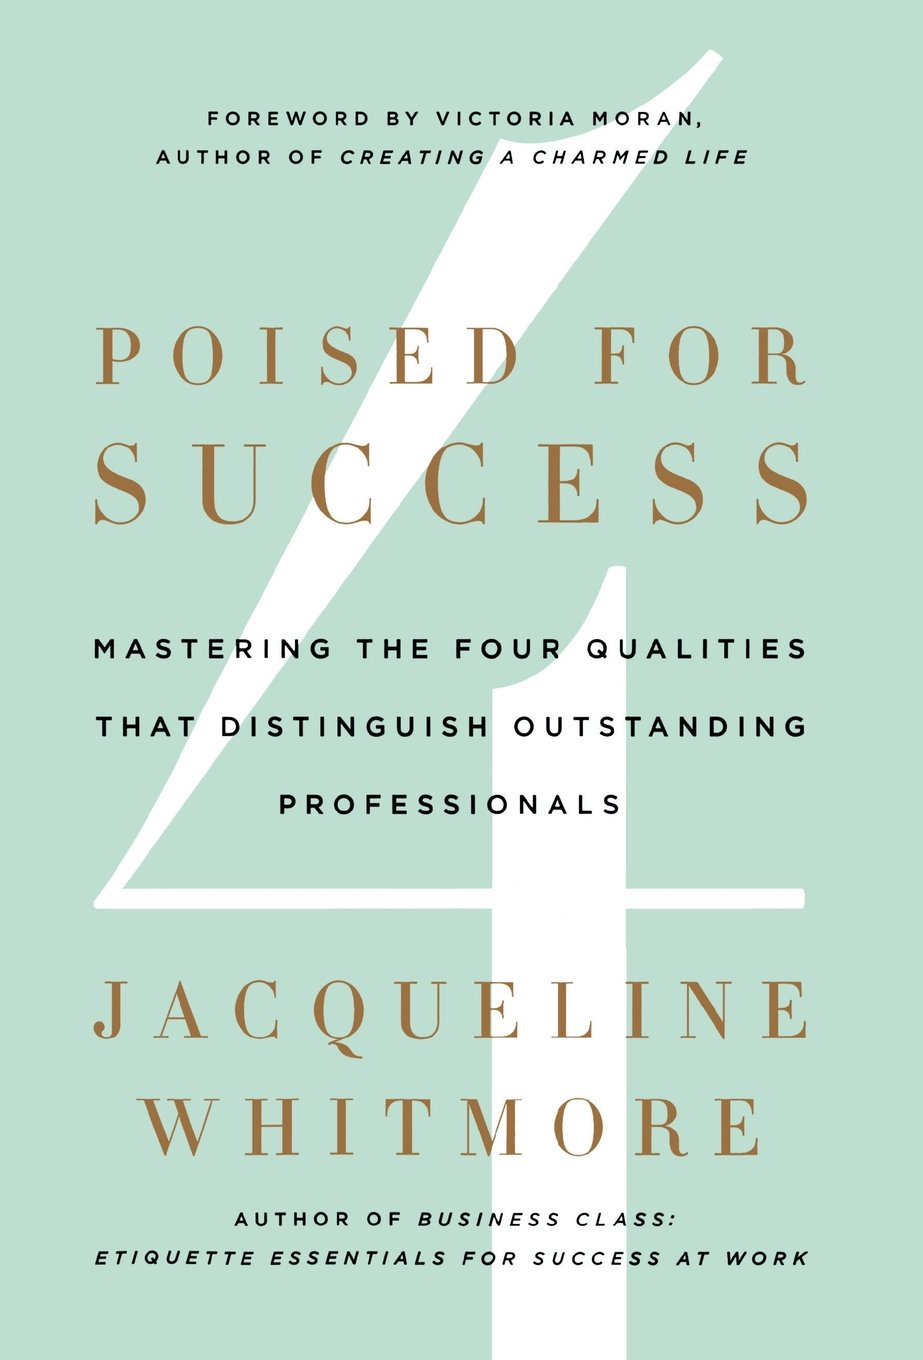 Poised Success Distinguish Outstanding Professionals